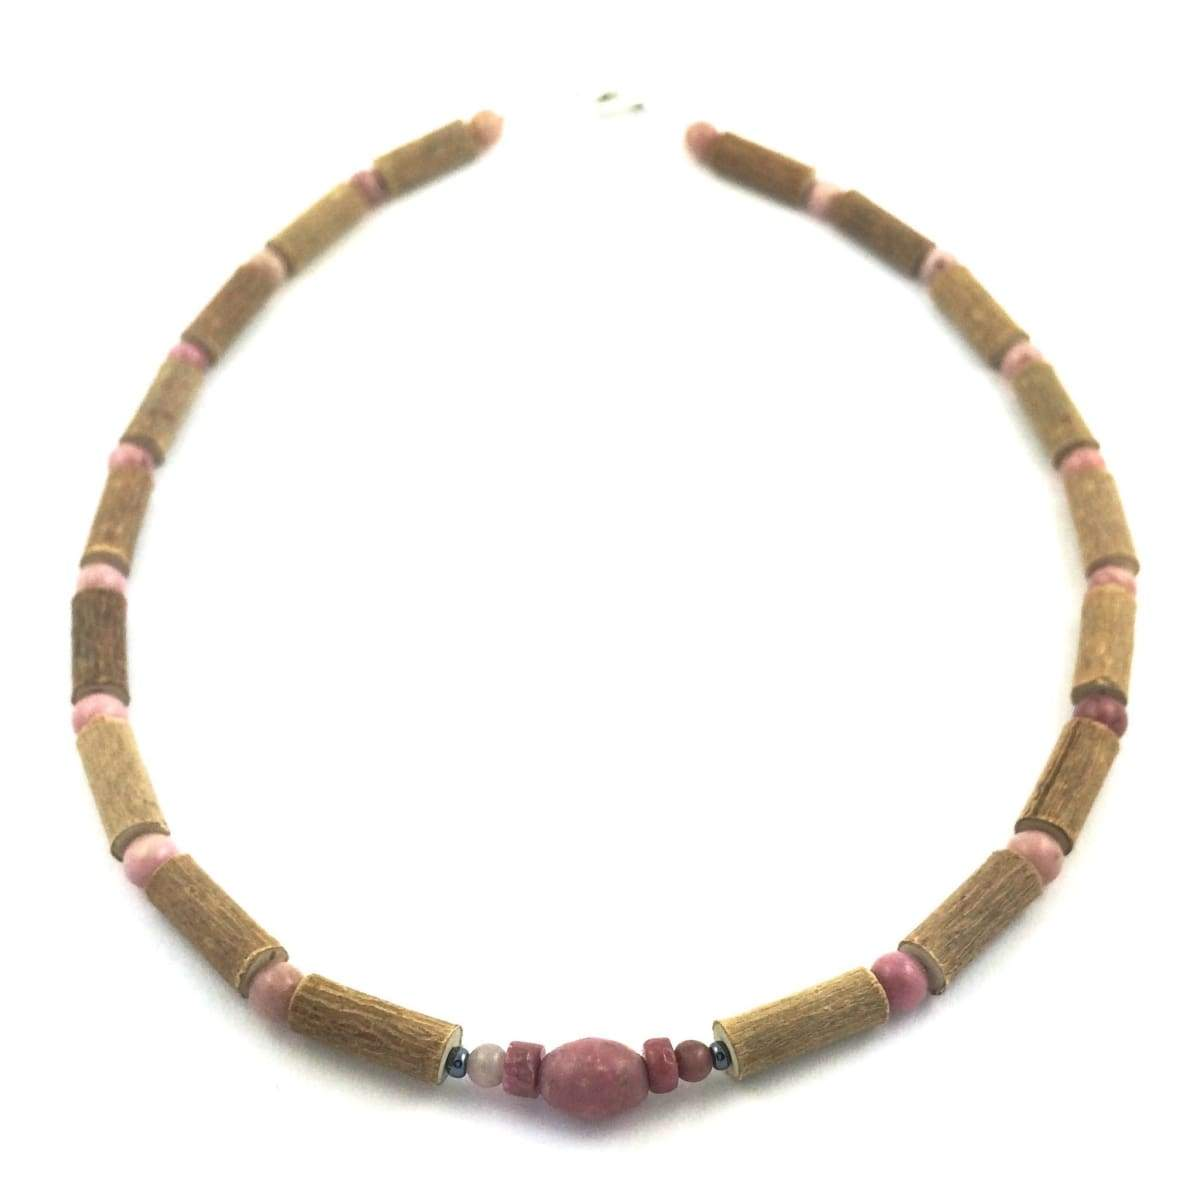 Hazel-Gemstone Pink Rhodonite - 13.5 Necklace - Lobster Claw Clasp - Hazelwood & Gemstone Jewelry